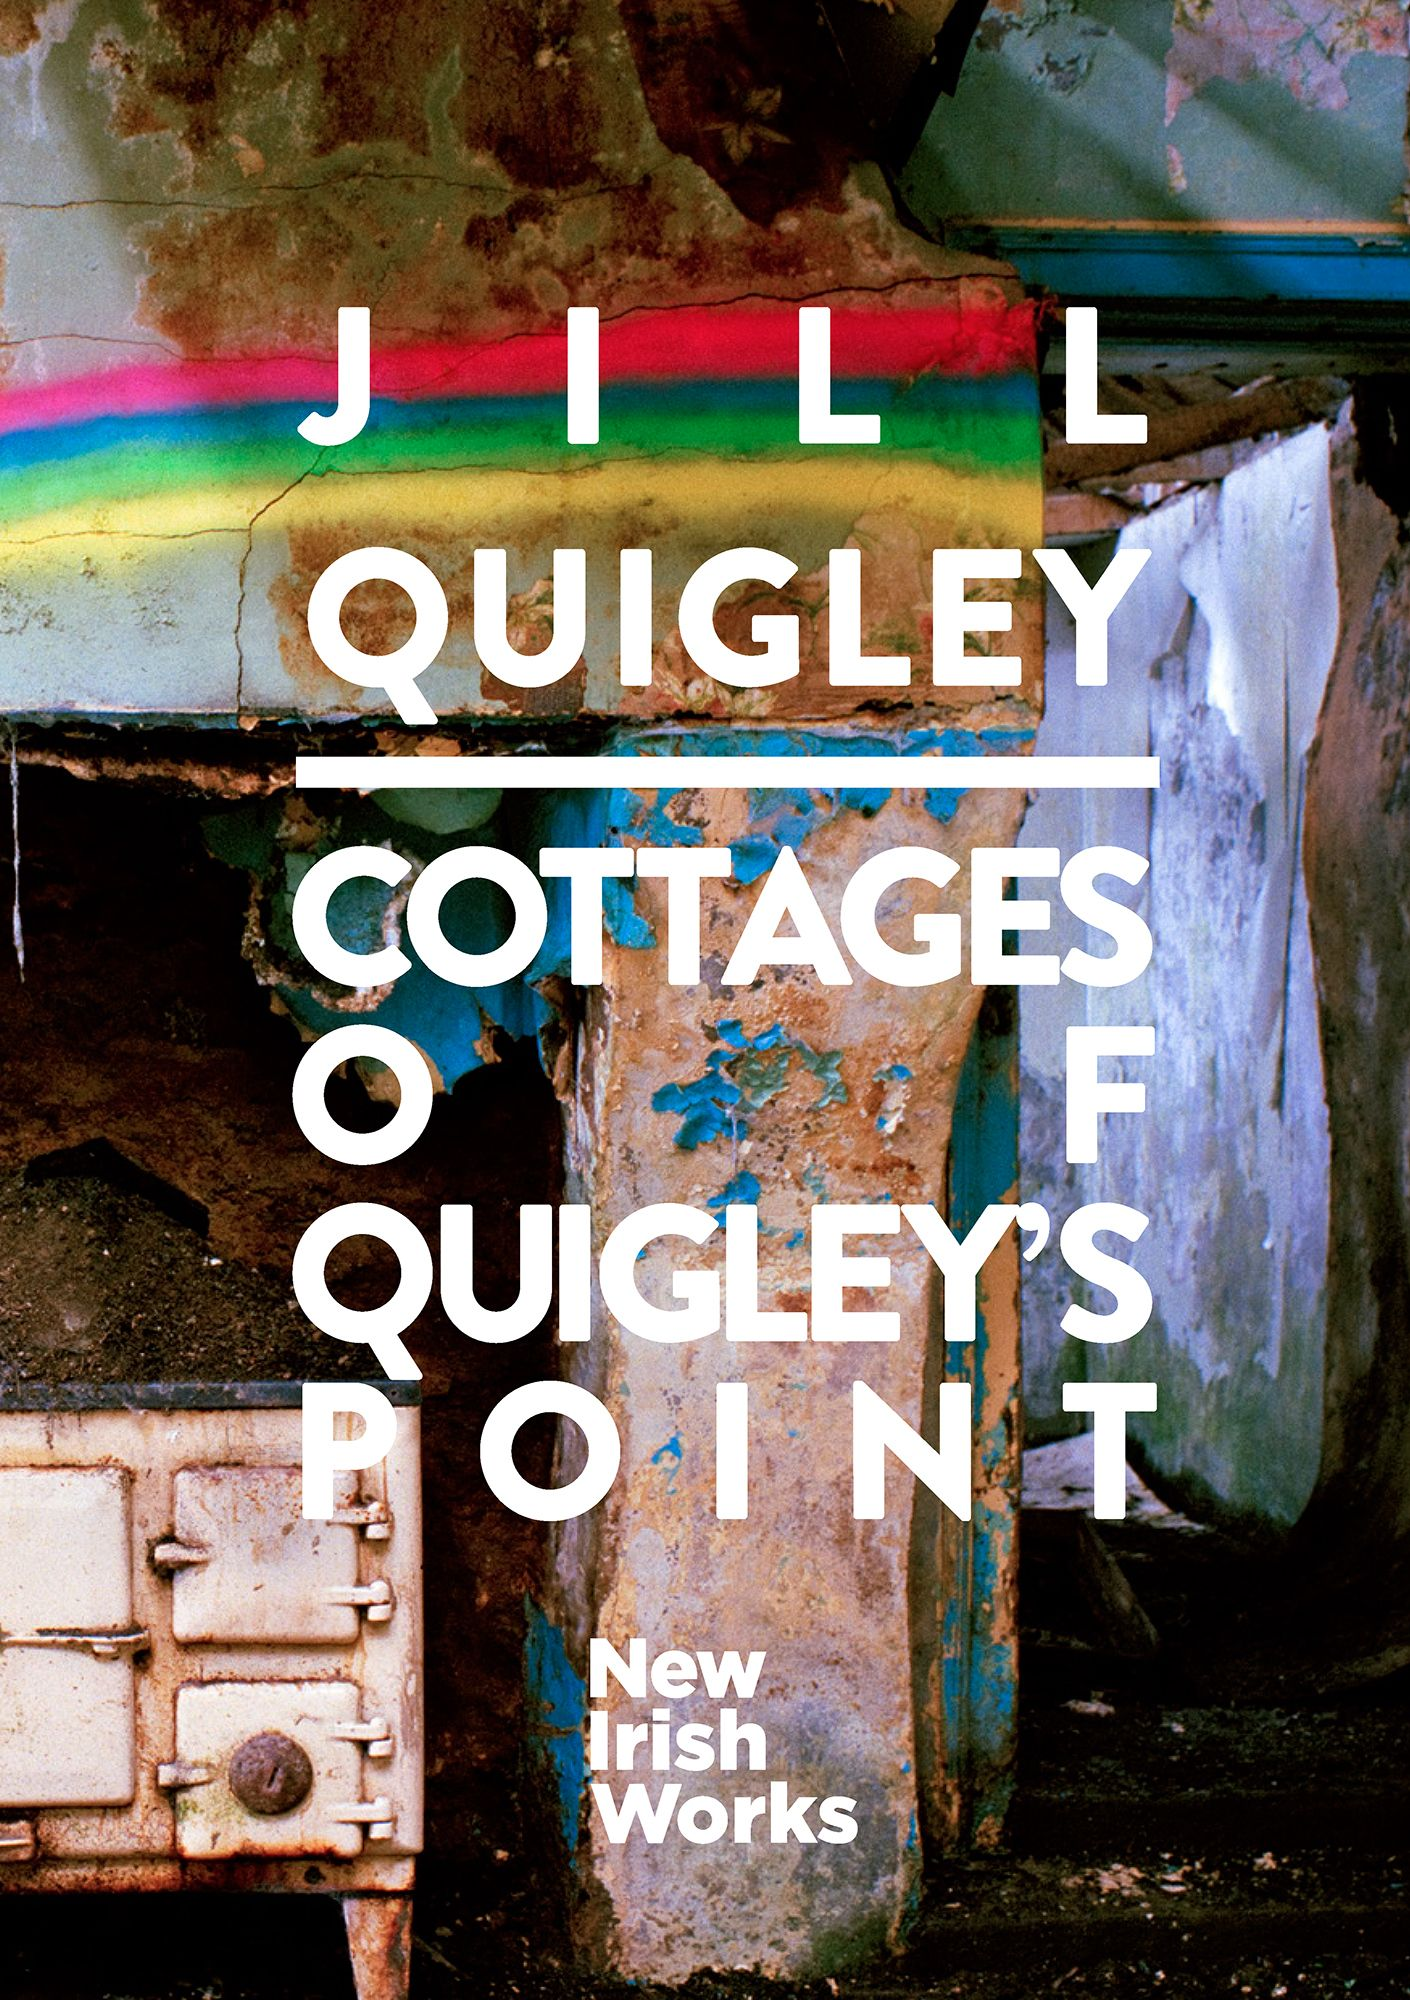 Cottages of Quigley Point, Jill Quigley